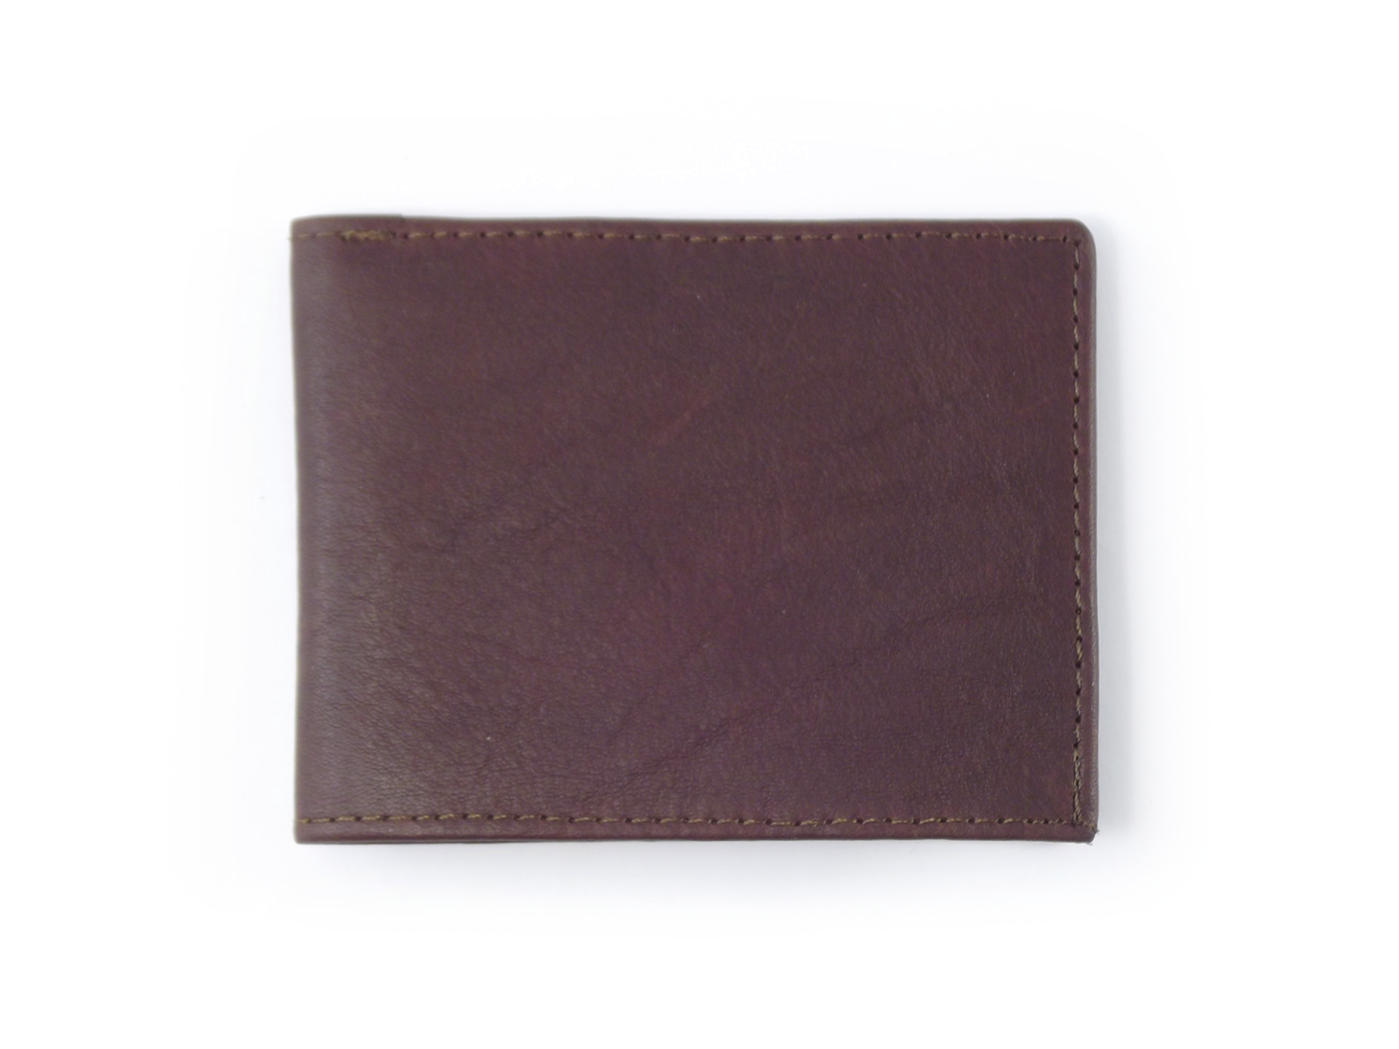 Mens leather business card wallet der lederhandler wallet 6 cards hpmw22ntku colourmoves Images